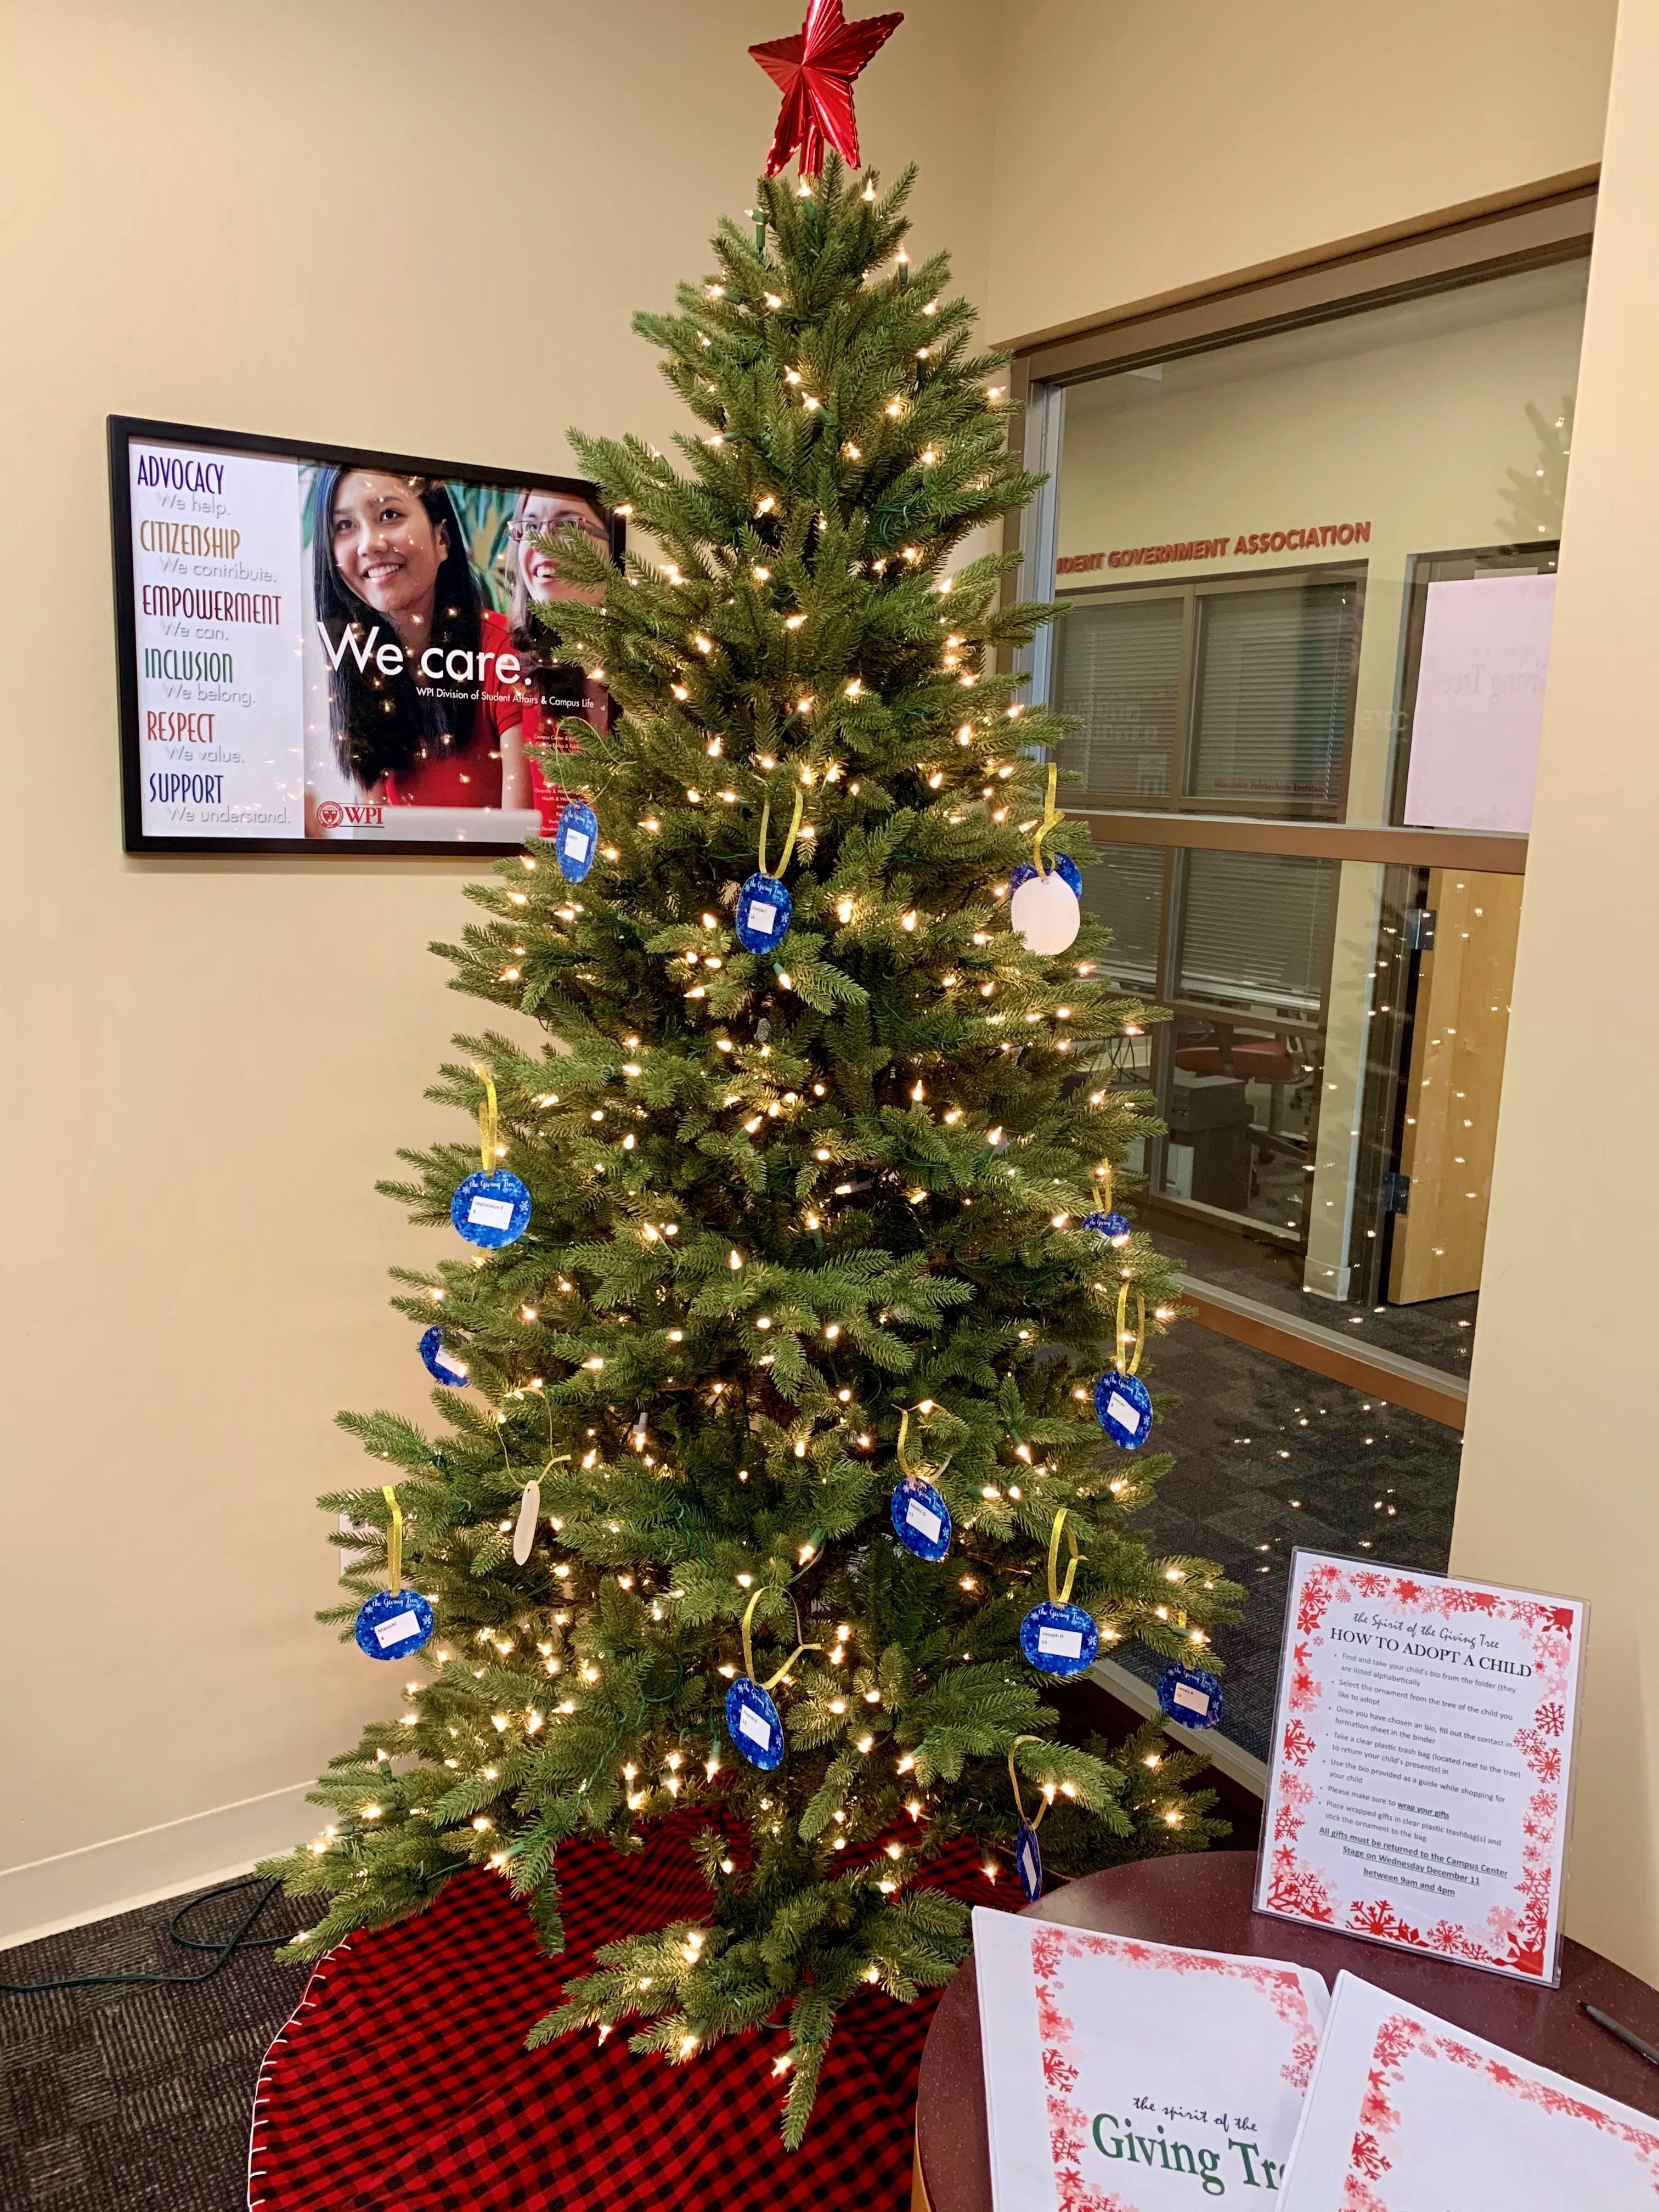 Student Activities Office Giving Tree Photo alt